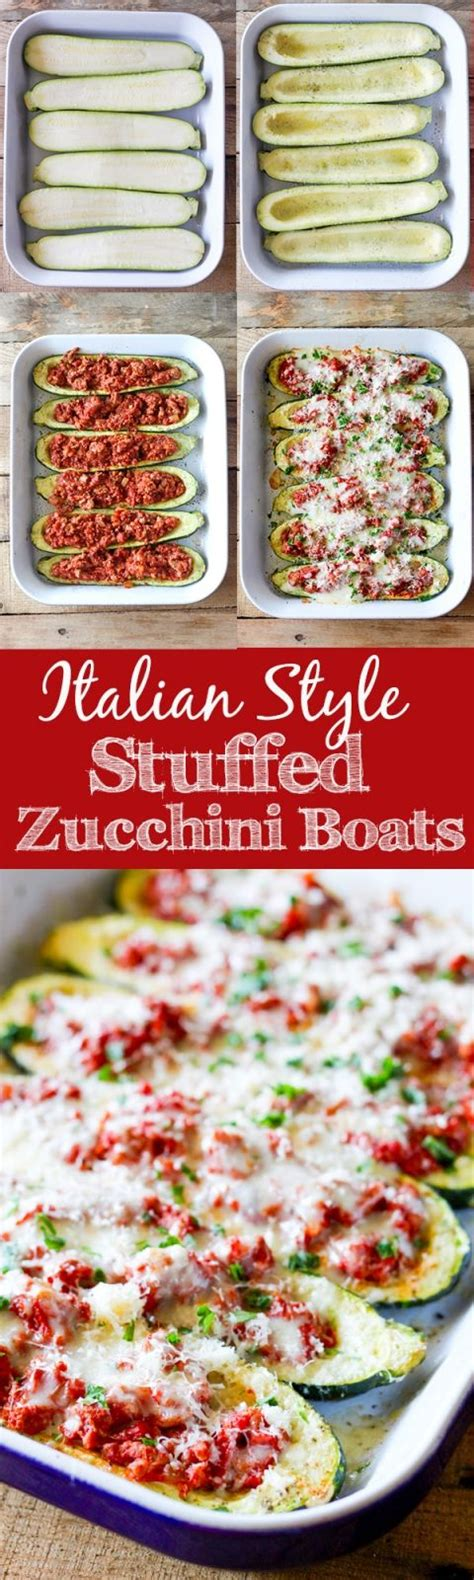 italian stuffed zucchini boats with ground beef tomatoes mozzarella italian style stuffed zucchini boats recipe yumm